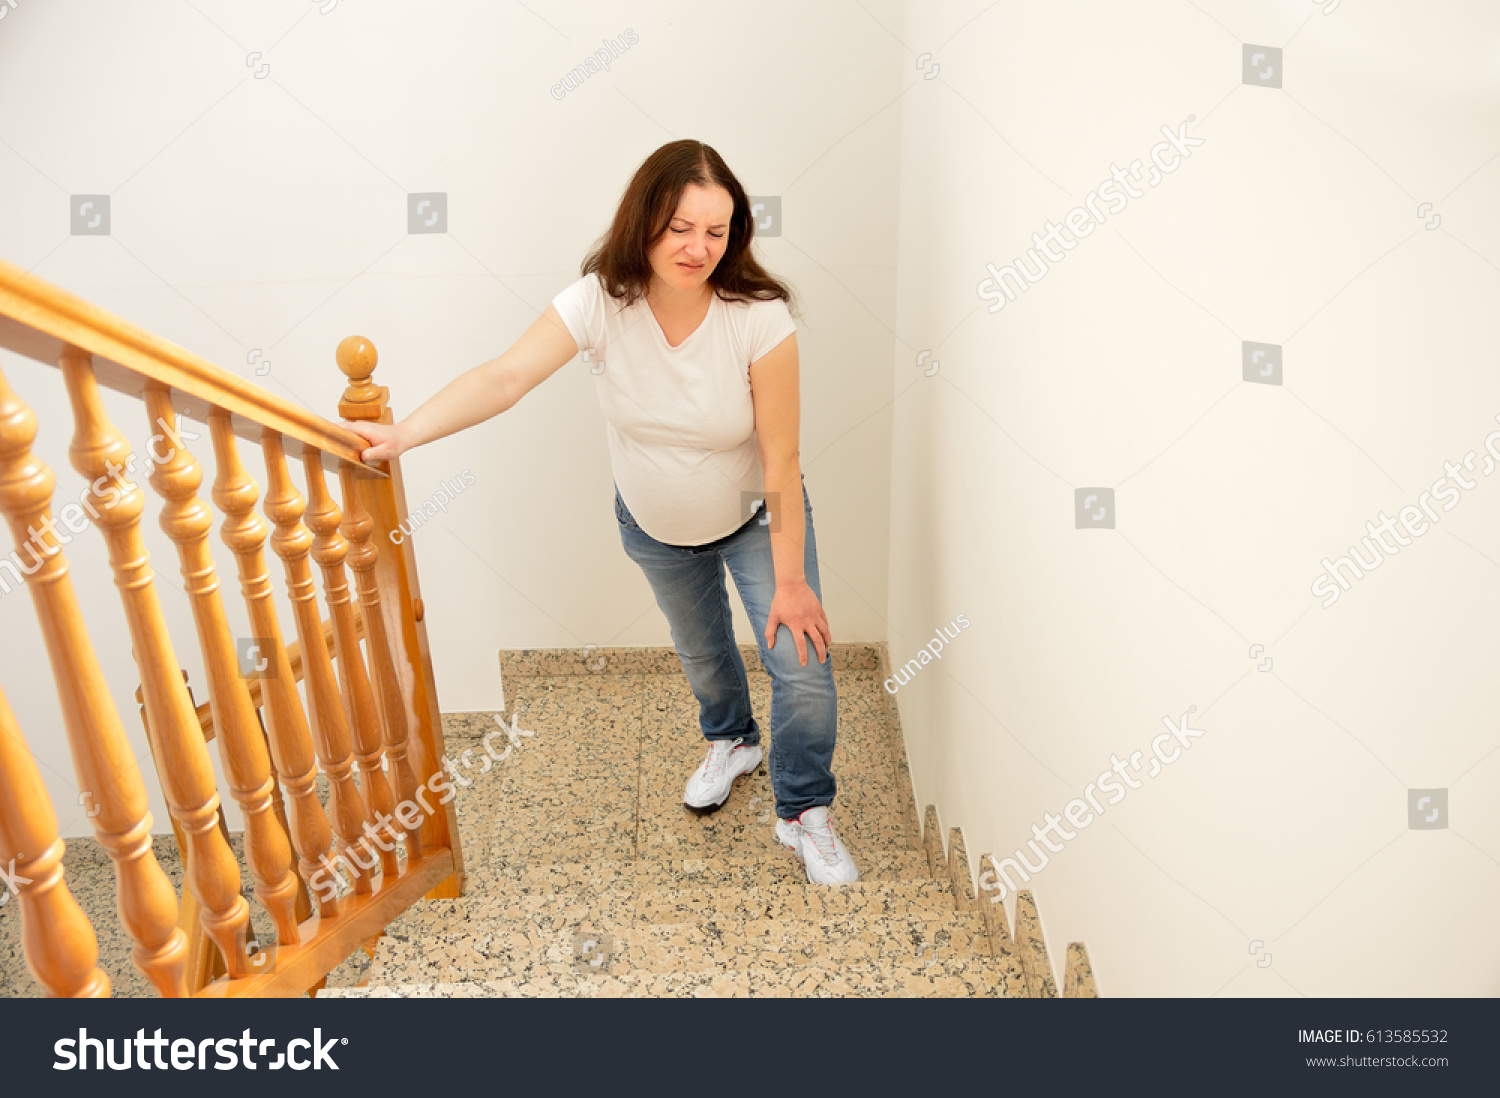 Difficulty Walking After Standing Up